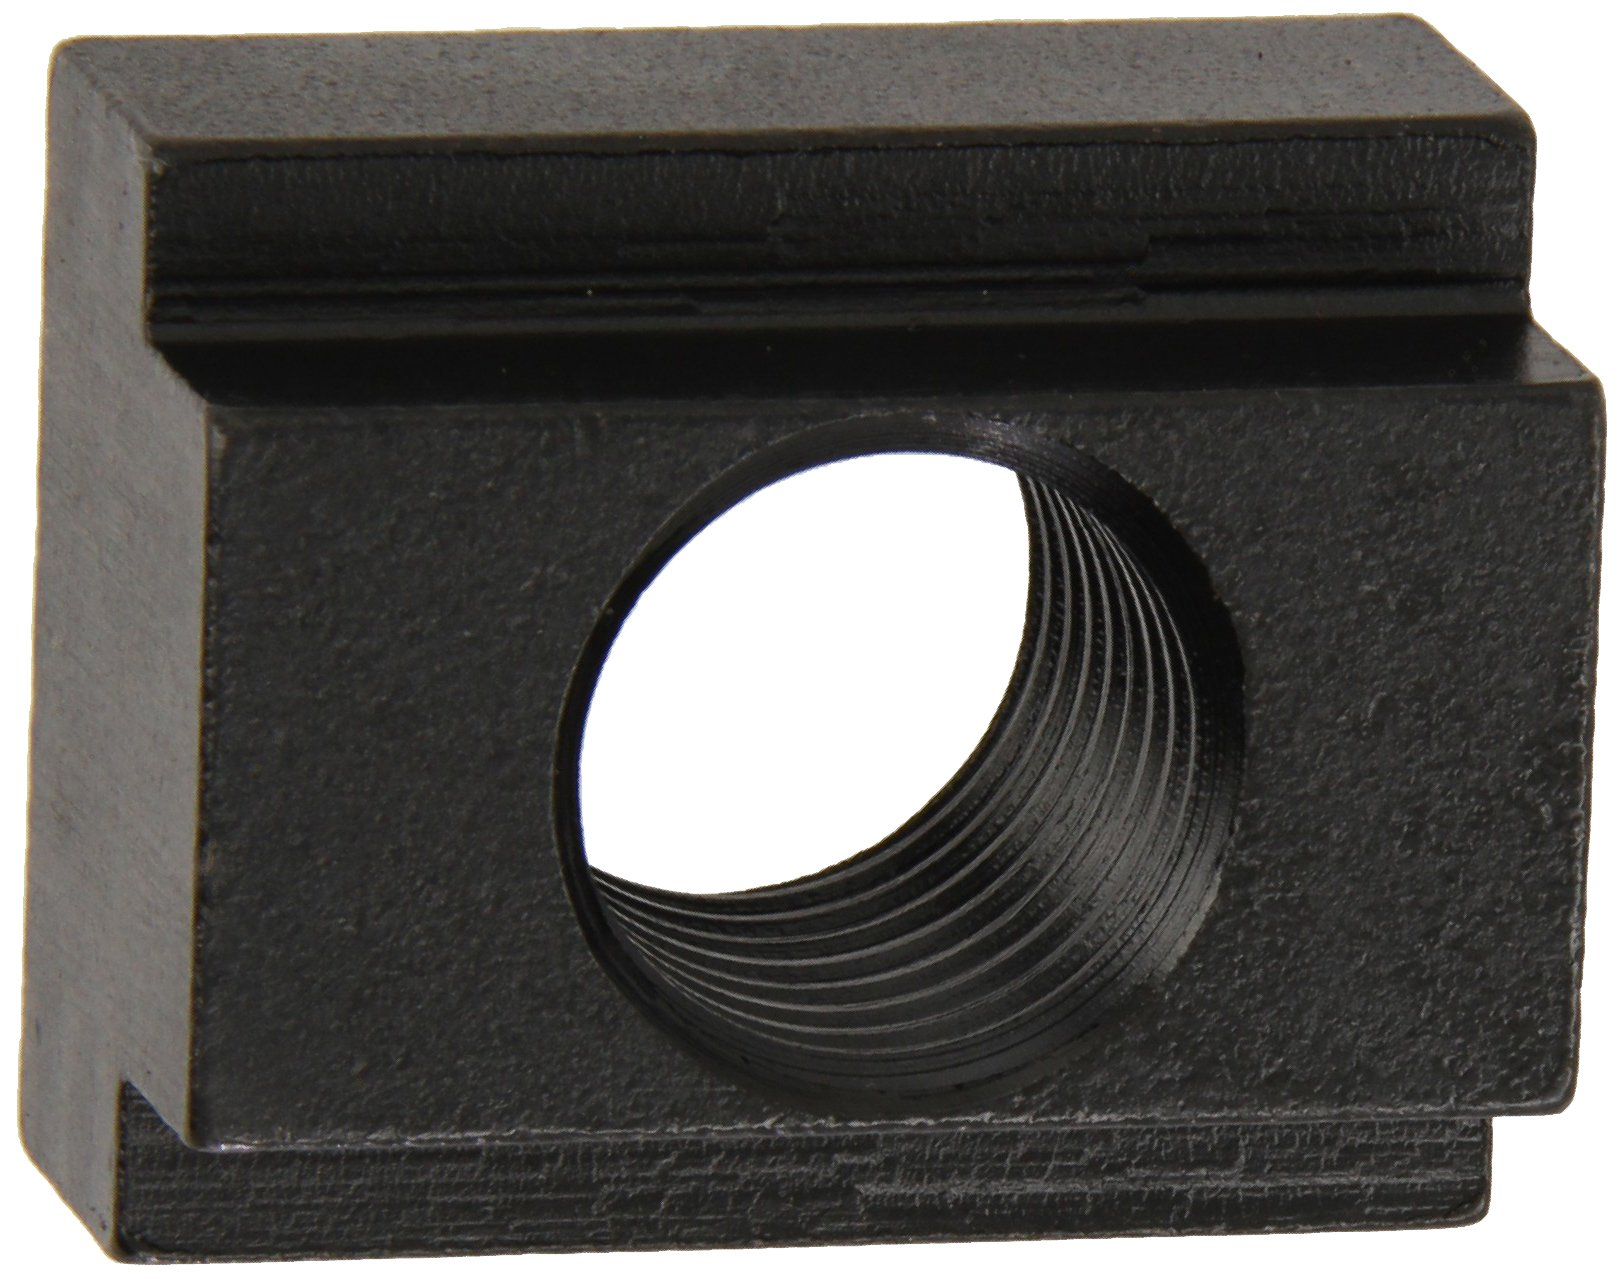 1018 Steel T-Slot Nut, Black Oxide Finish, Grade 6, Tapped Through, 1''-8 Threads, 1-1/8'' Height, 1-1/16'' Slot Depth, Made in US (Pack of 2) by Small Parts